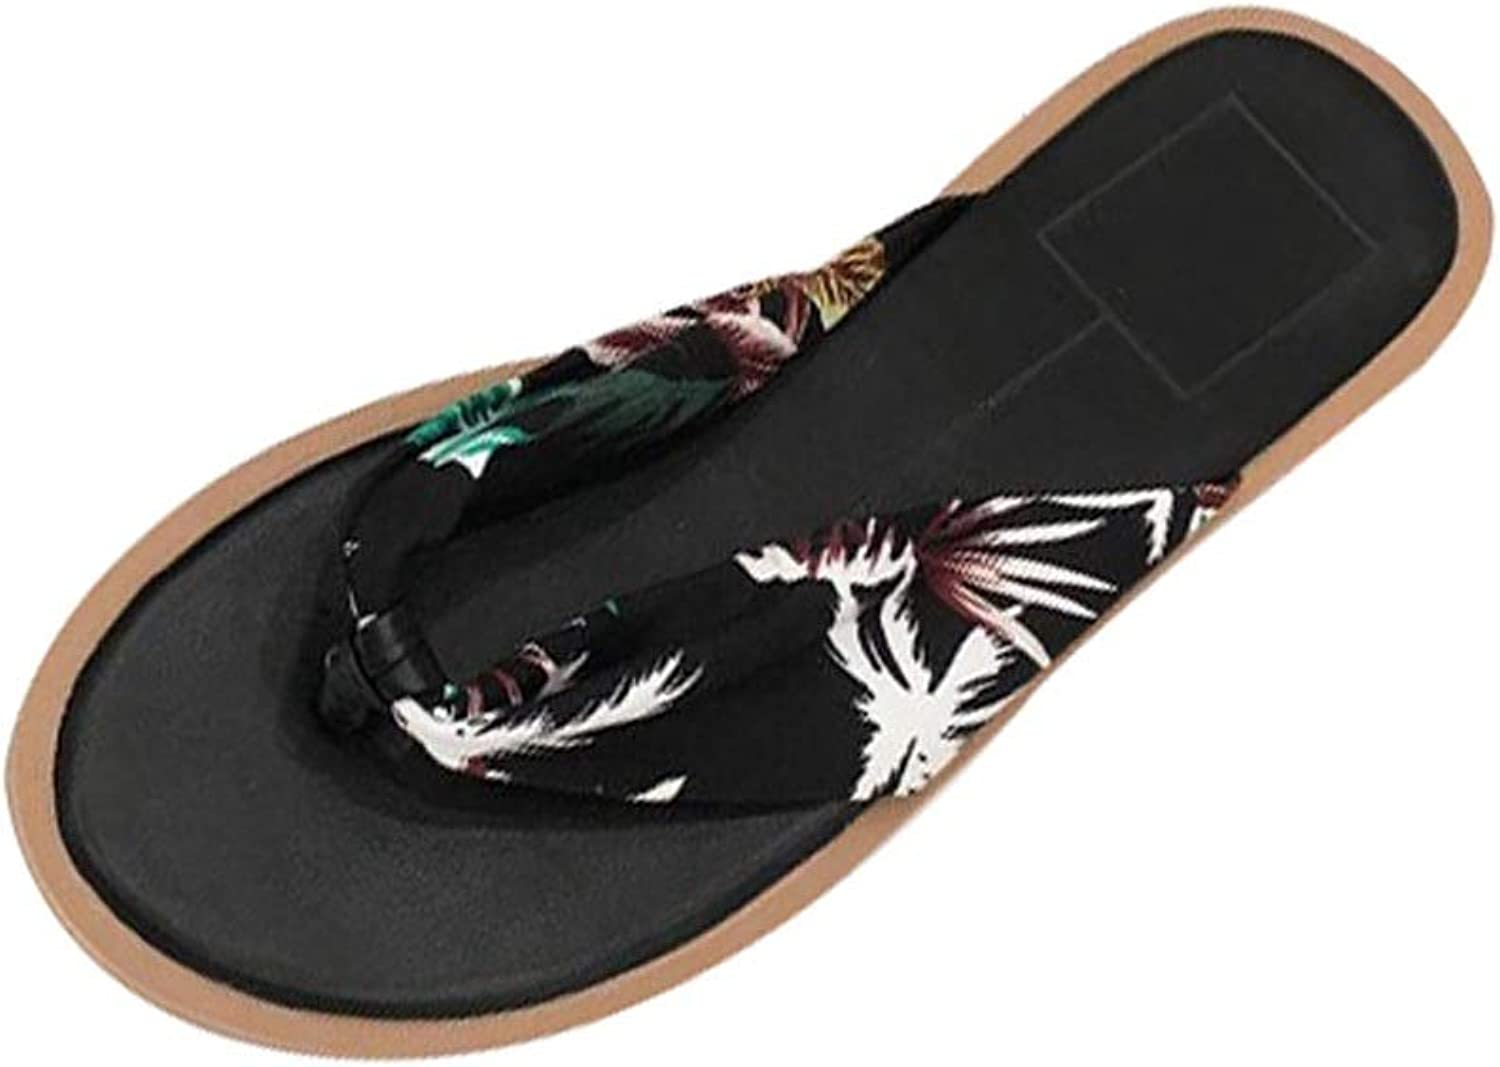 Fanxu Women's Flip Flops,Beach Sandals Summer Flat Slip Non-Slip Flip-Flops (3colors shoes Size 3539)